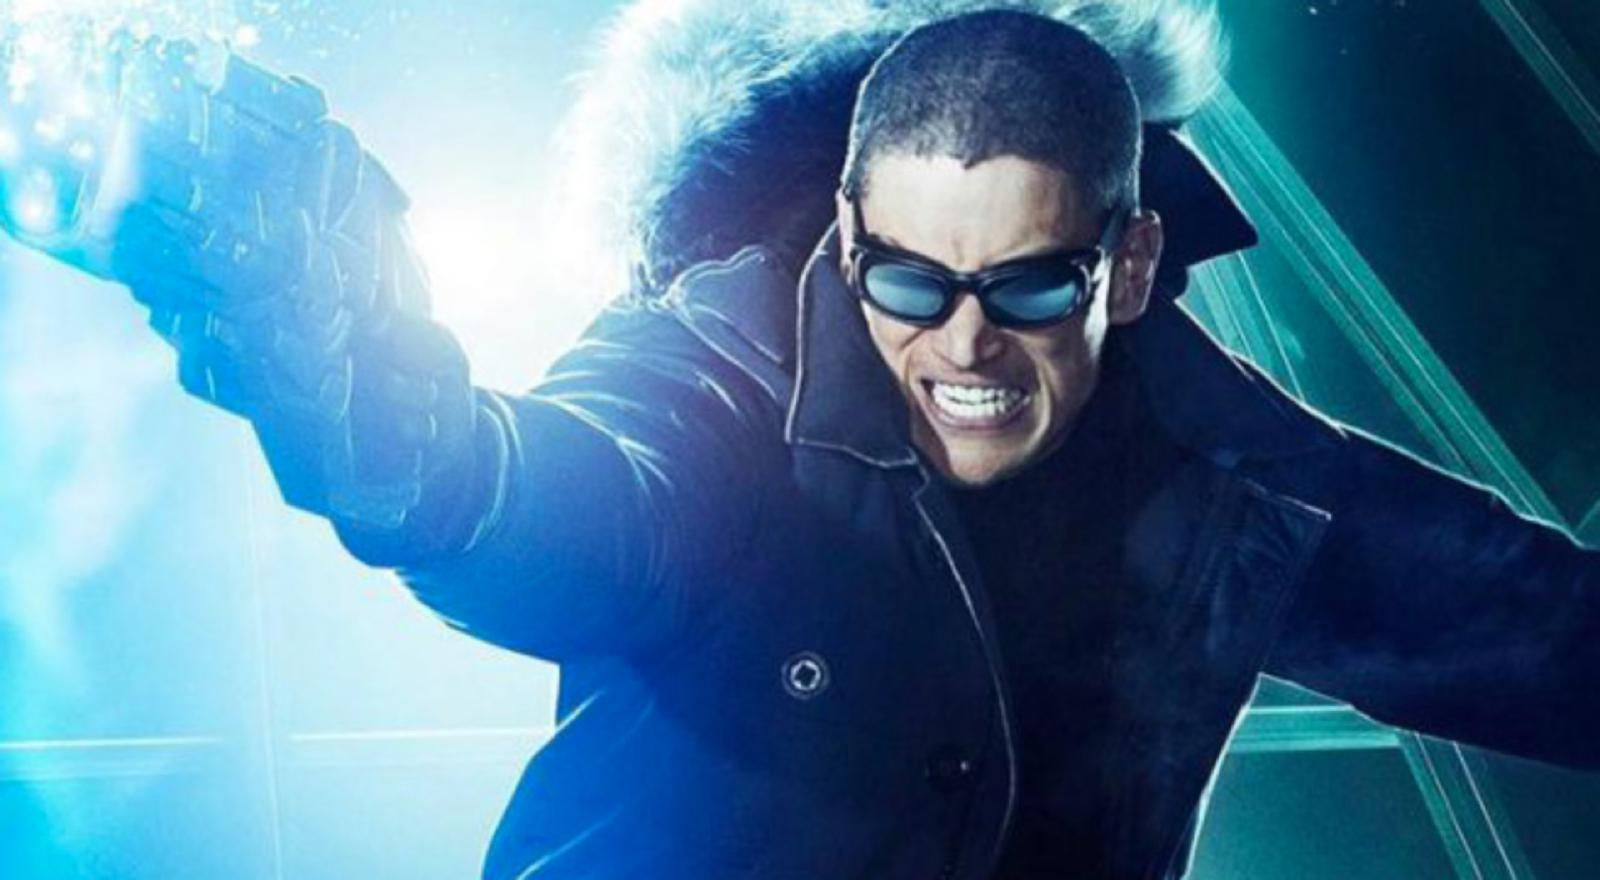 Captain Cold Costume Diy Guide For Cosplay & Amp Halloween